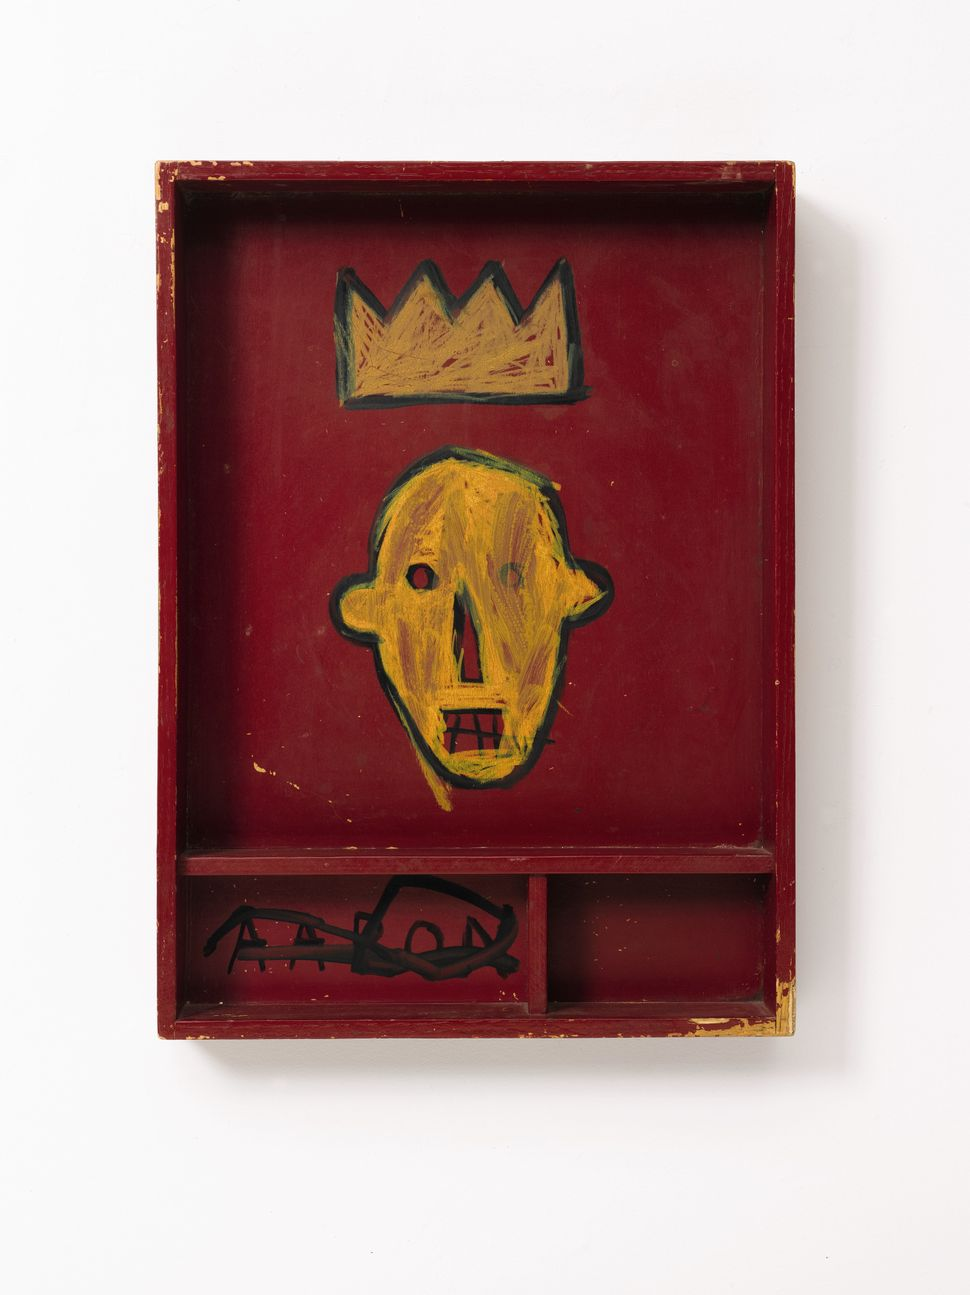 Lot 237, Property from the Estate of Jan Krugier, Jean-Michel Basquiat, Untitled, acrylic and marker on wood, 22 by 16 by 3 1